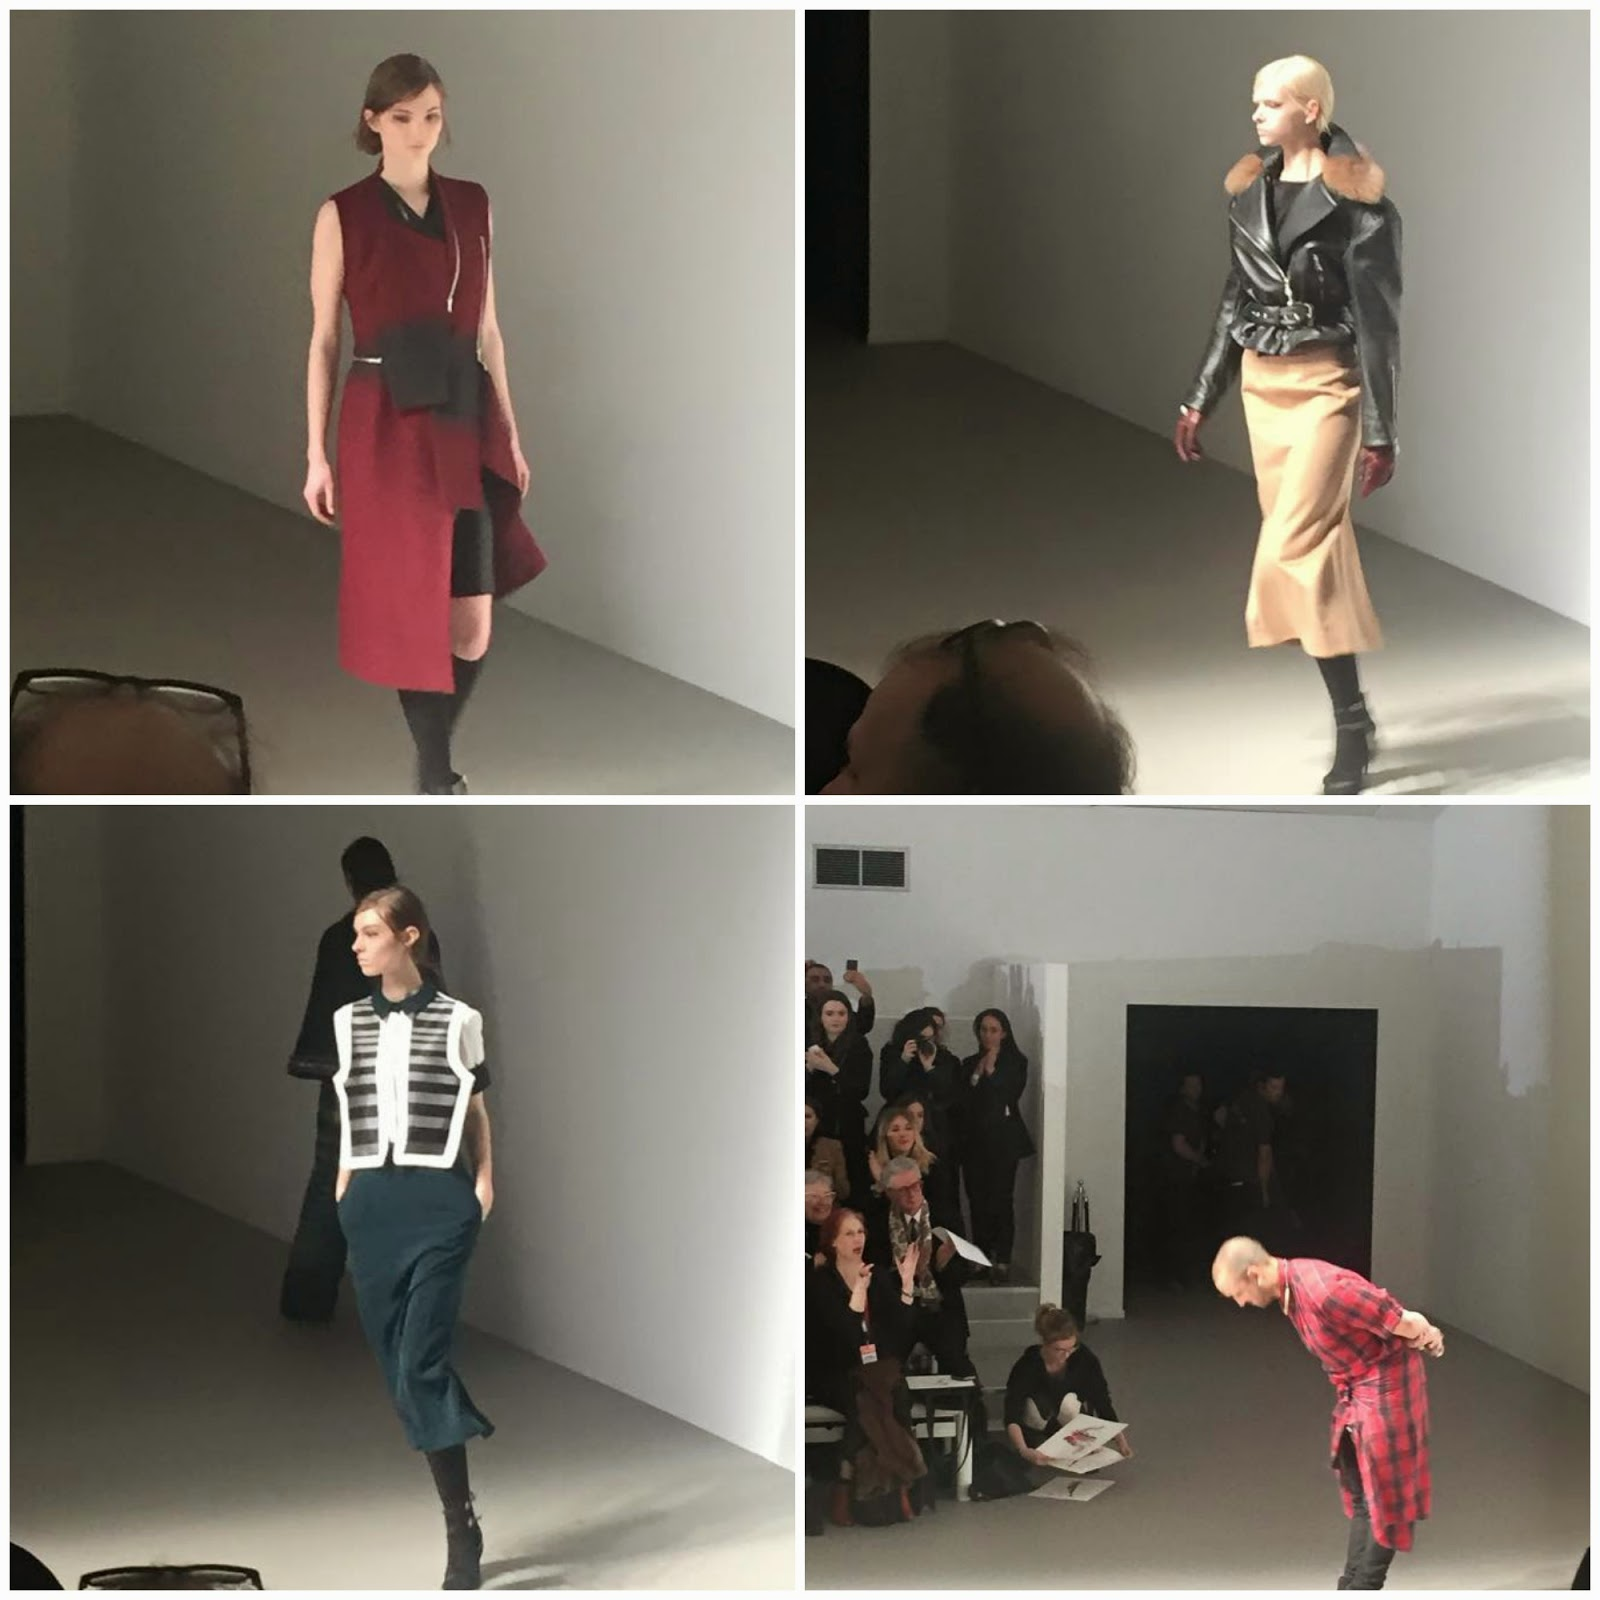 LFW AW15 Snapshots: Photo Diary, mode madeleine, fashion blogger, LFW, AW15, london fashion week, seventies, styling, catwalk, fashion week, felder felder, bora aksu, red hot sunglasses, sam faires, michelle keegan, rosie londoner, jean pierre braganza